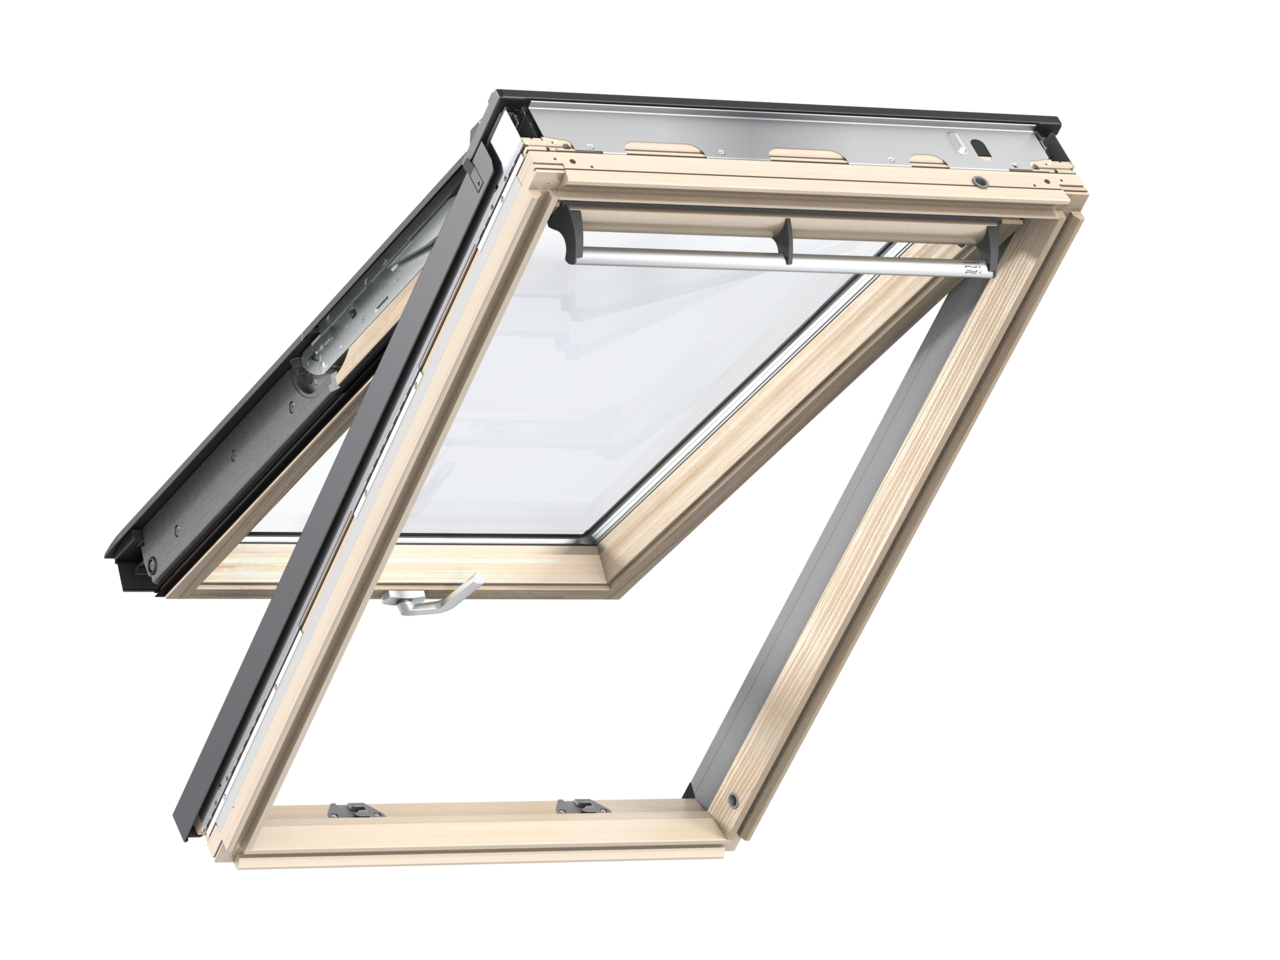 Velux GPL FK06 660 x 1180mm Top Hung Standard 70Pane Roof Window - Pine